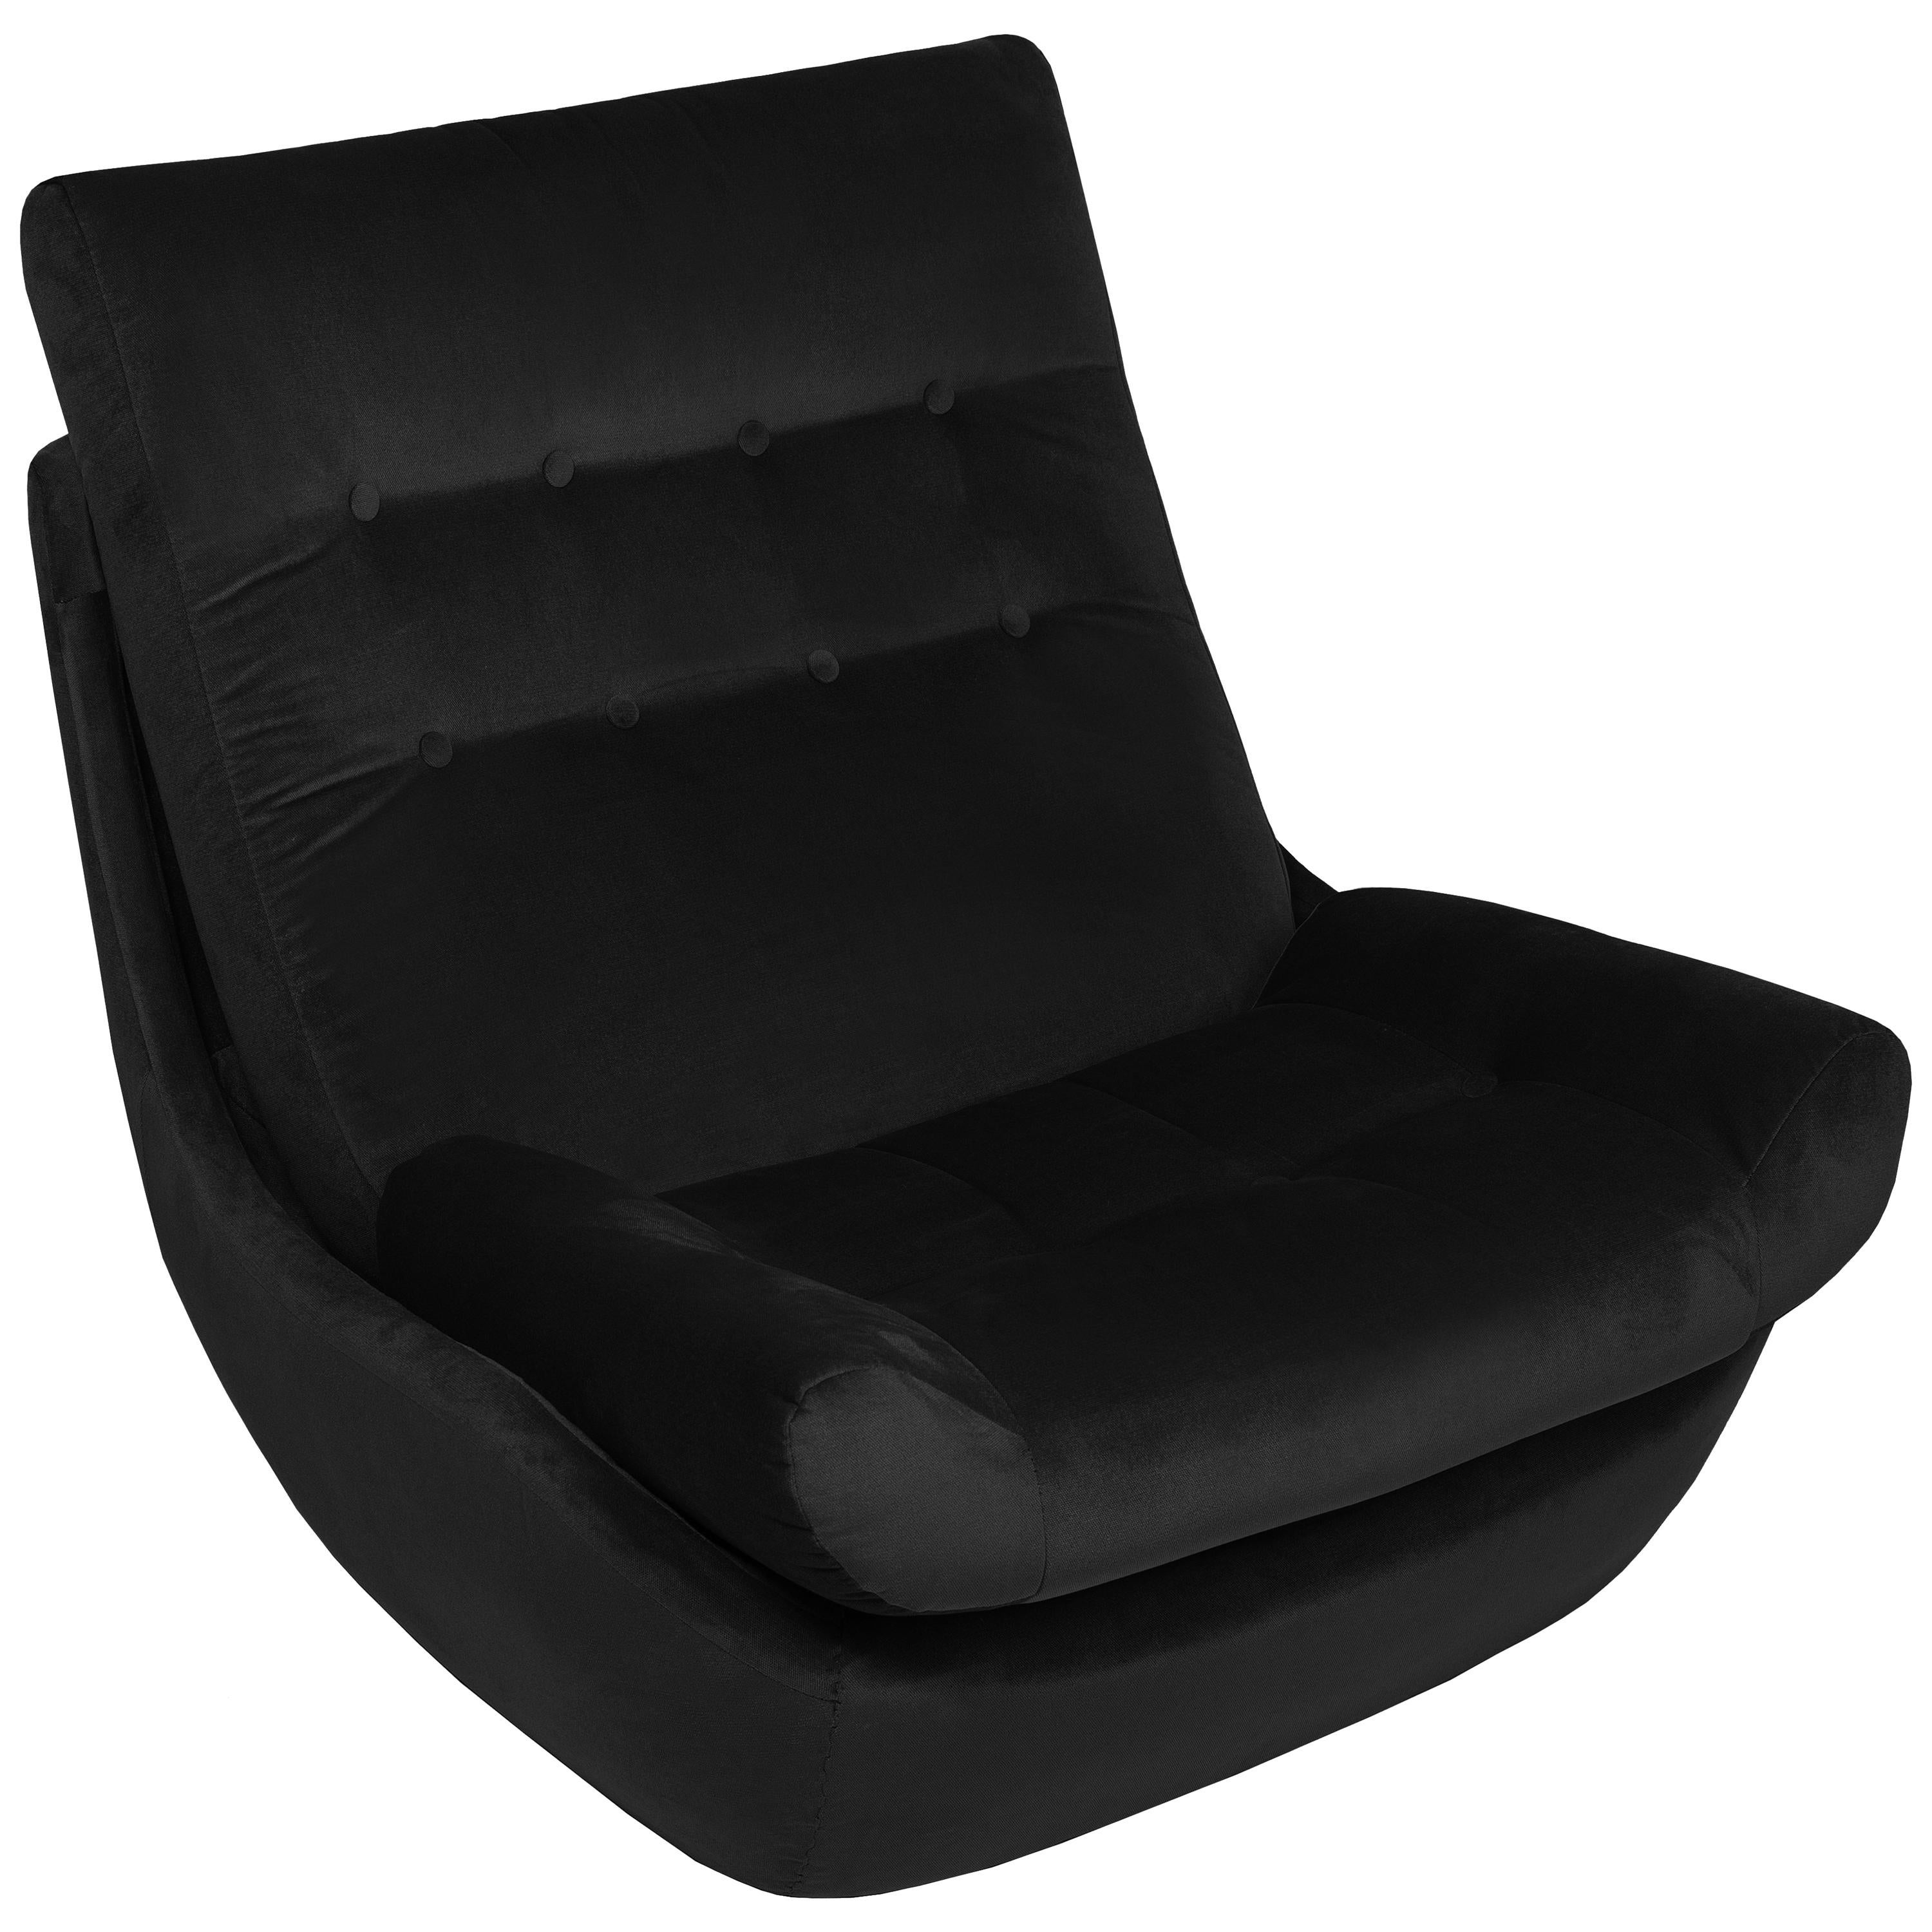 20th Century Vintage Black Velvet Giant Atlantis Armchair, 1960s